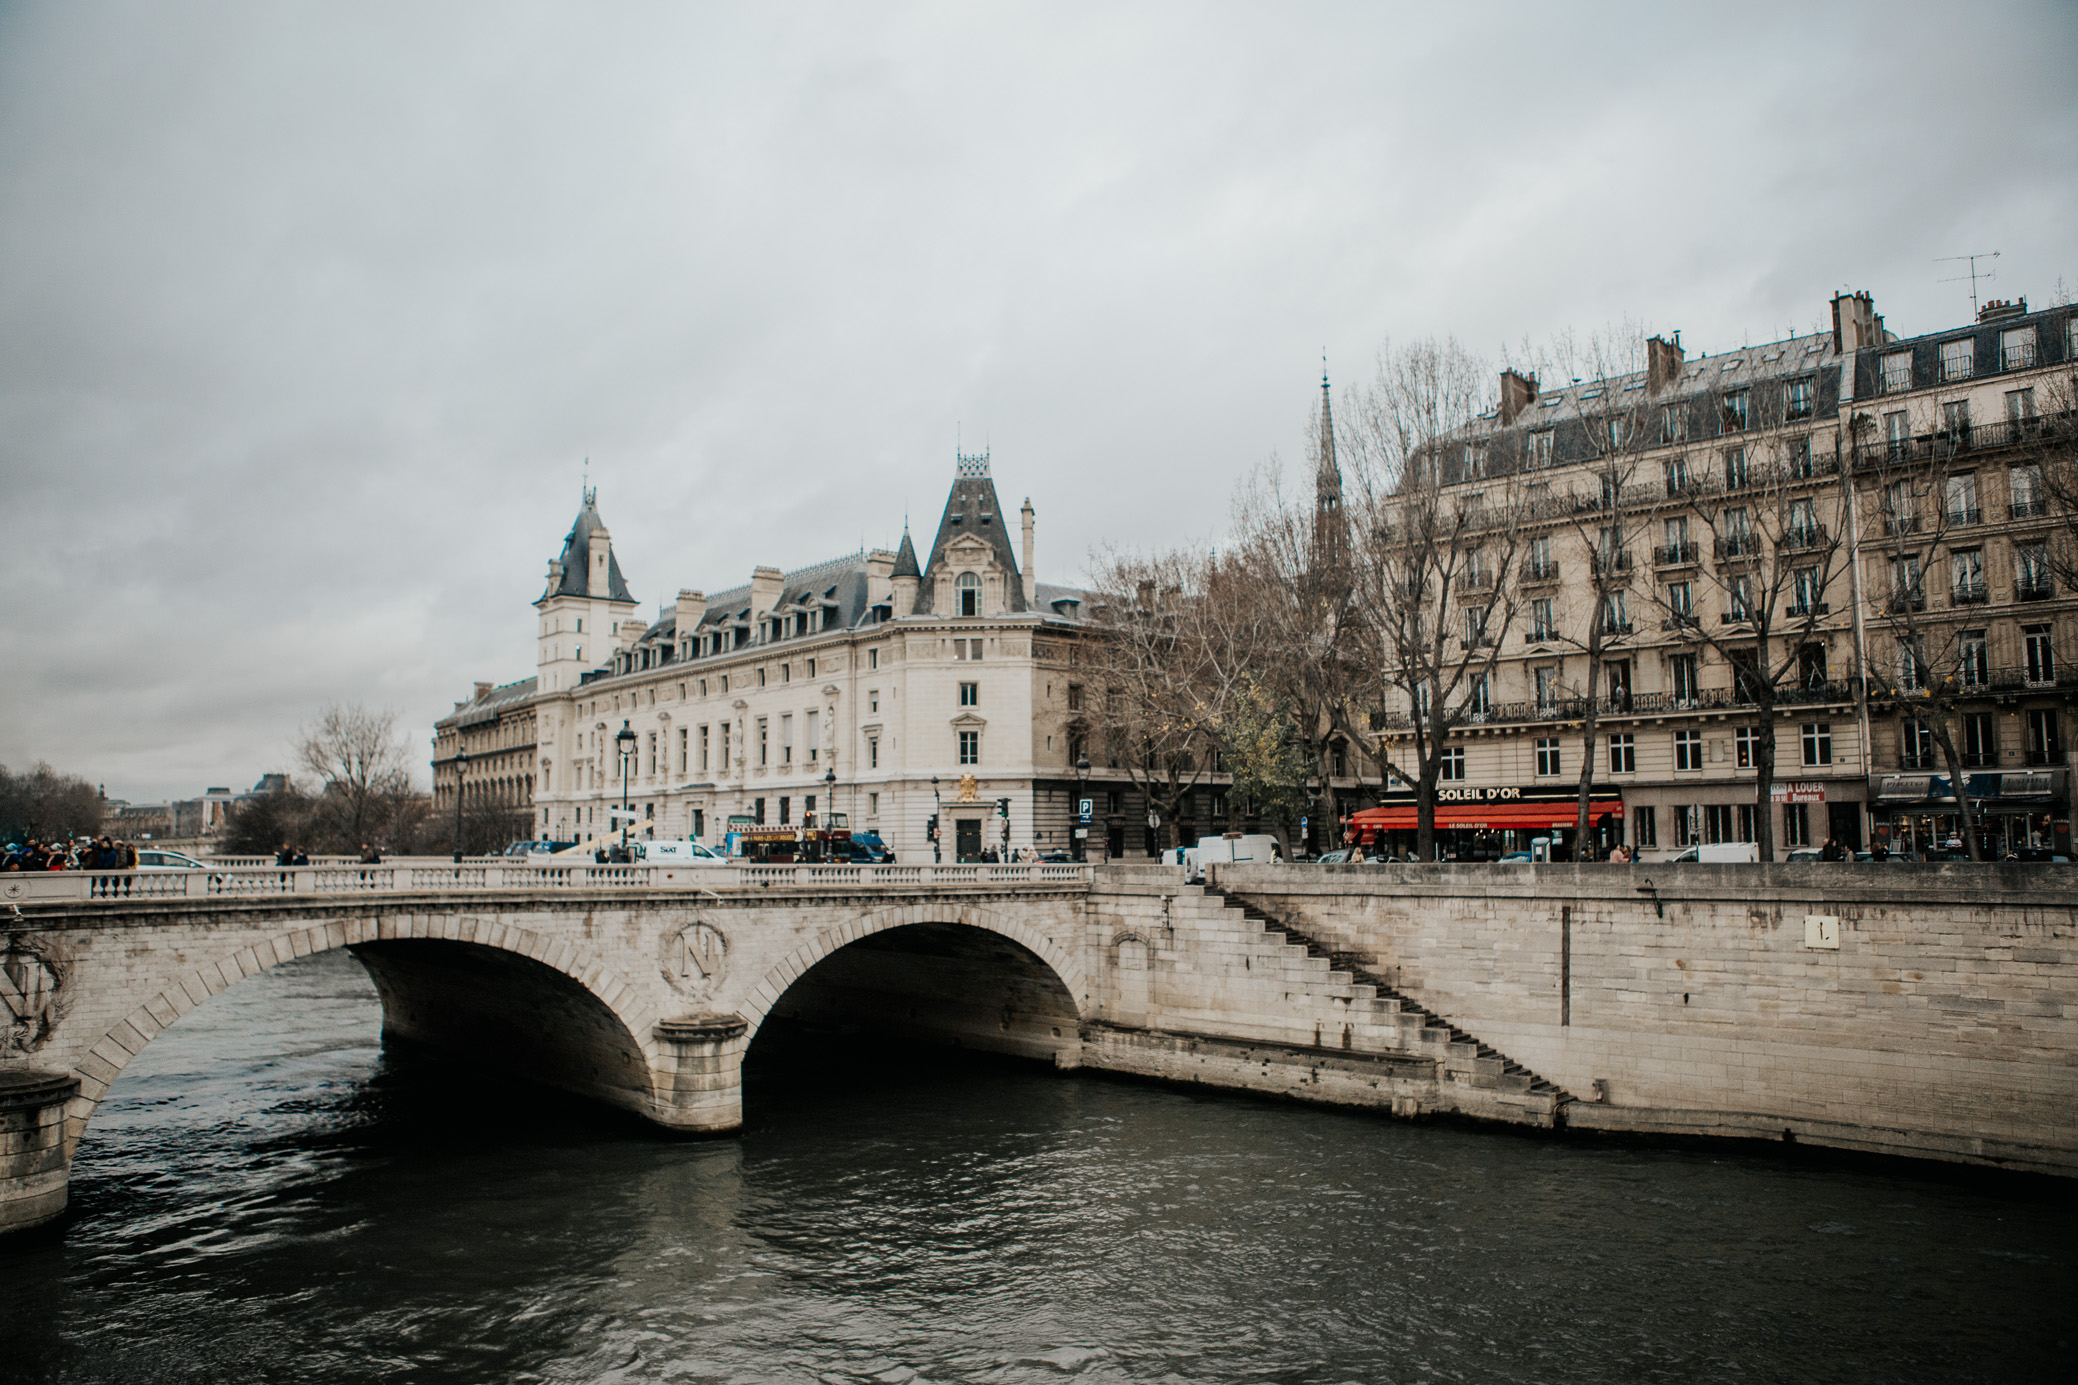 The Seine | Paris, France | December 7th, 2018 (Photo by David A. Smith / DSmithScenes)